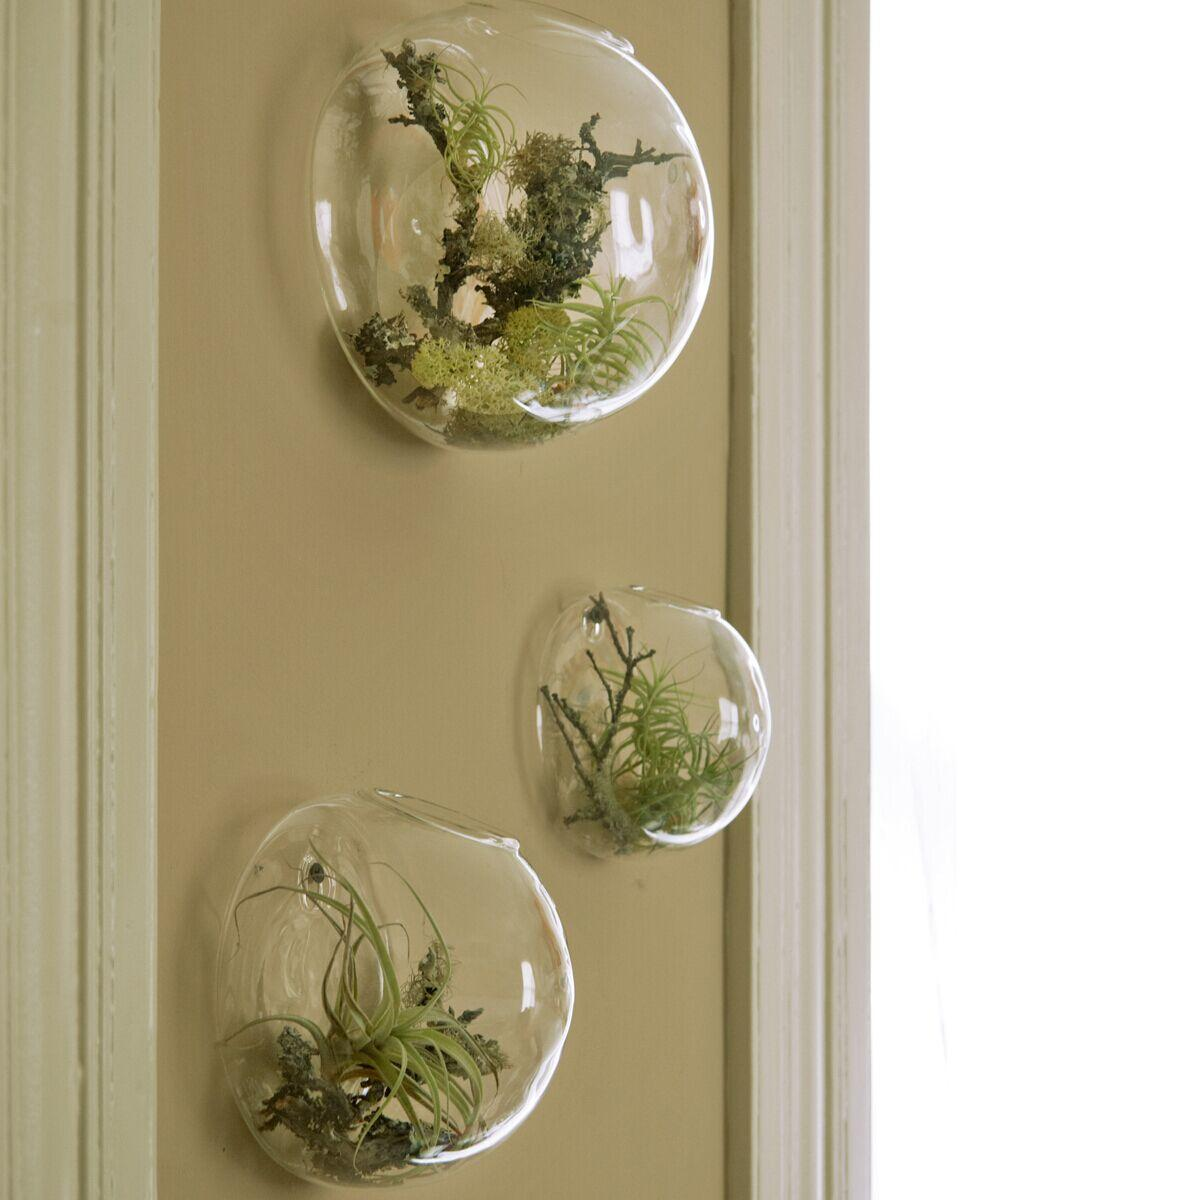 Wall bubble terrariums glass wall vase for flowersindoor plants wall bubble terrariums glass wall vase for flowersindoor plants wall mounted planter for succulents air plant holders home decor inexpensive floor vases reviewsmspy